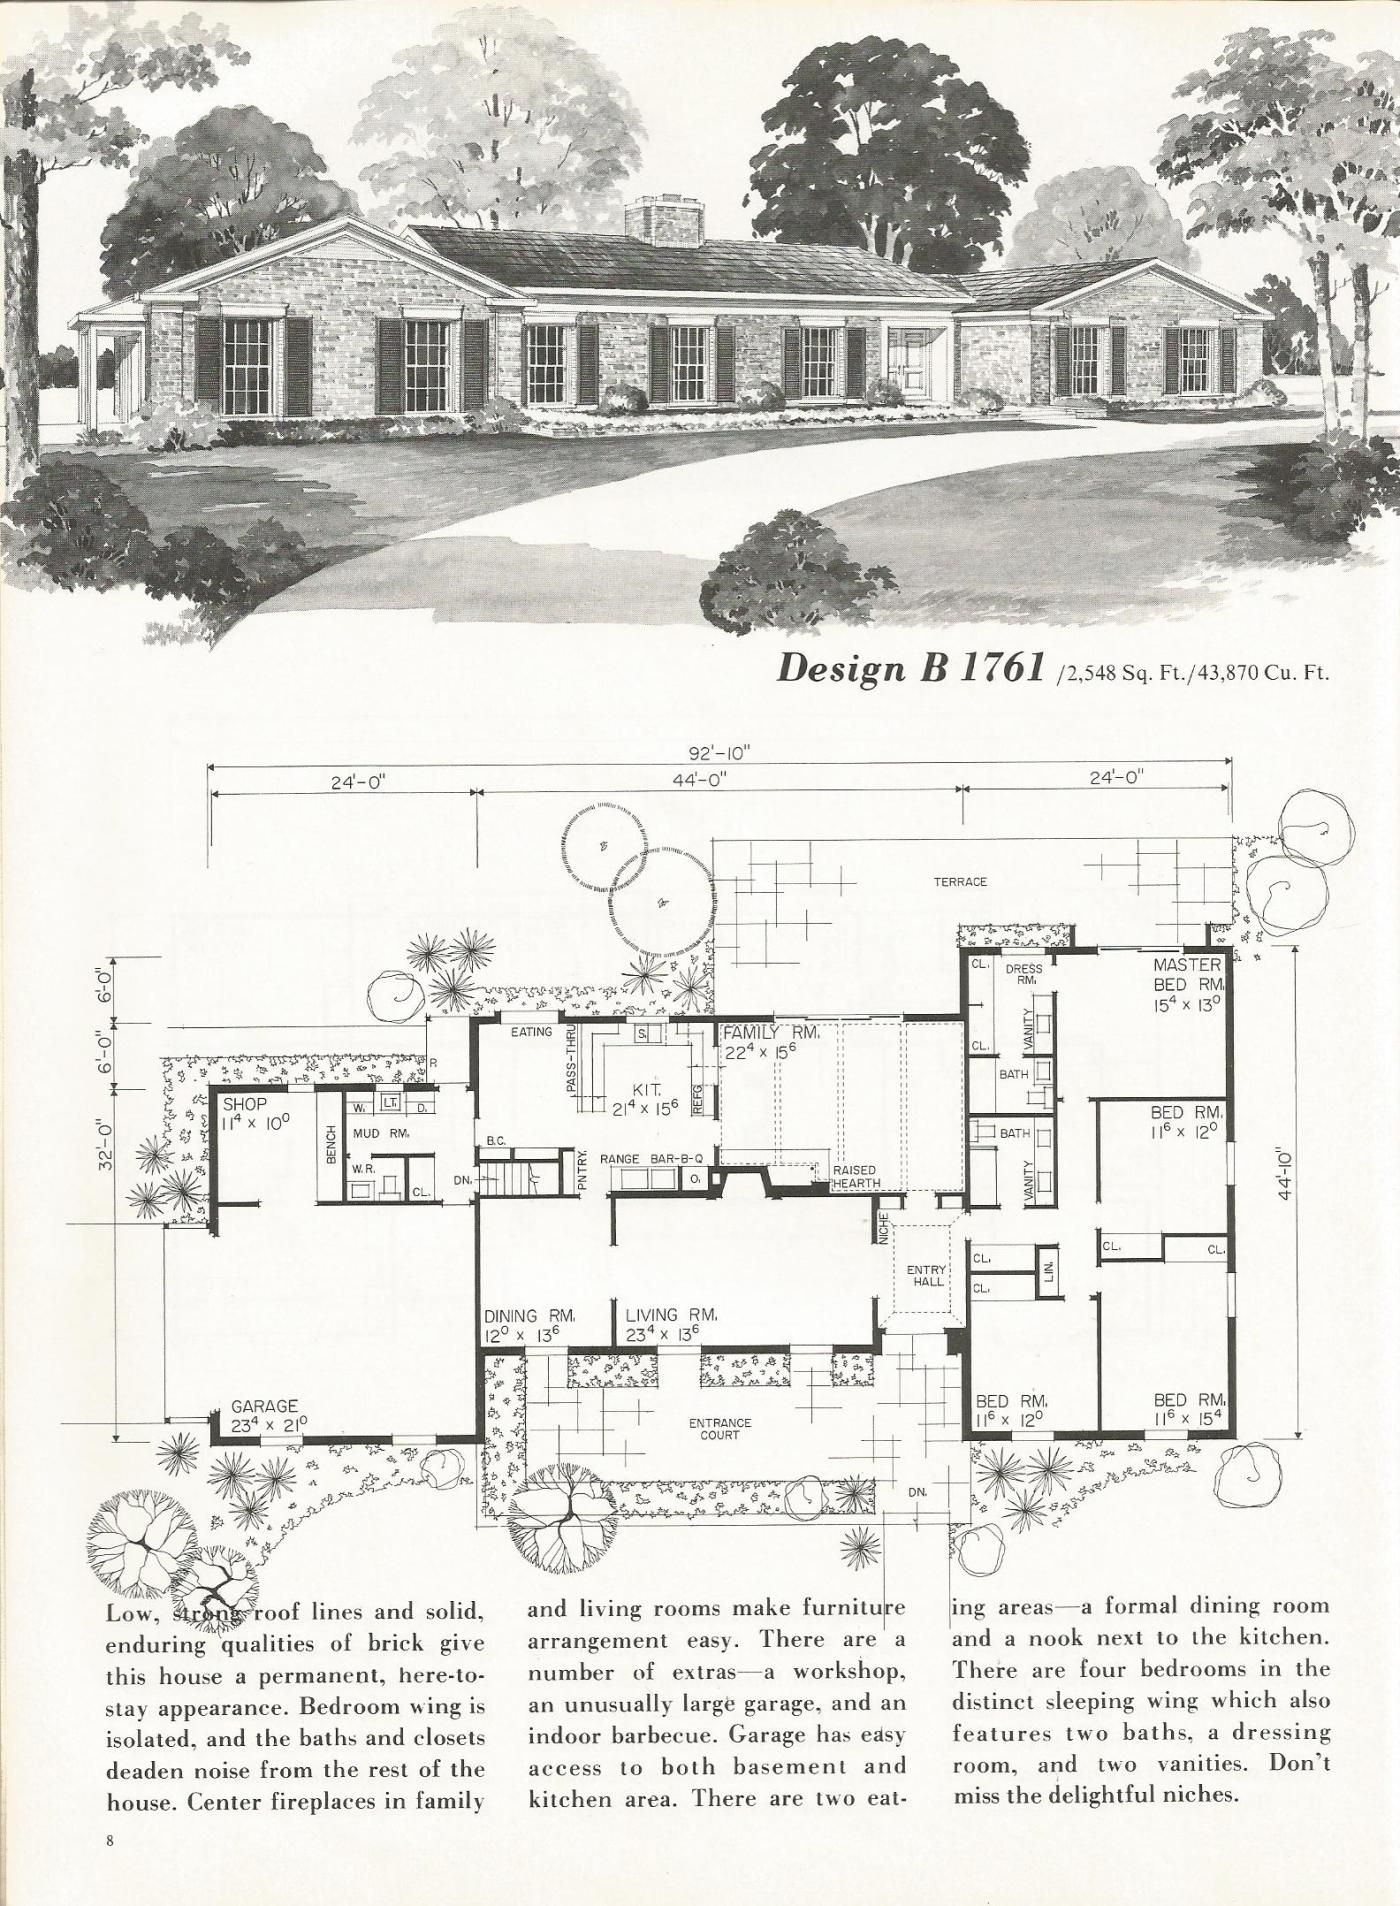 Favorite Front Of Old Ranch Plans Open Up Living And